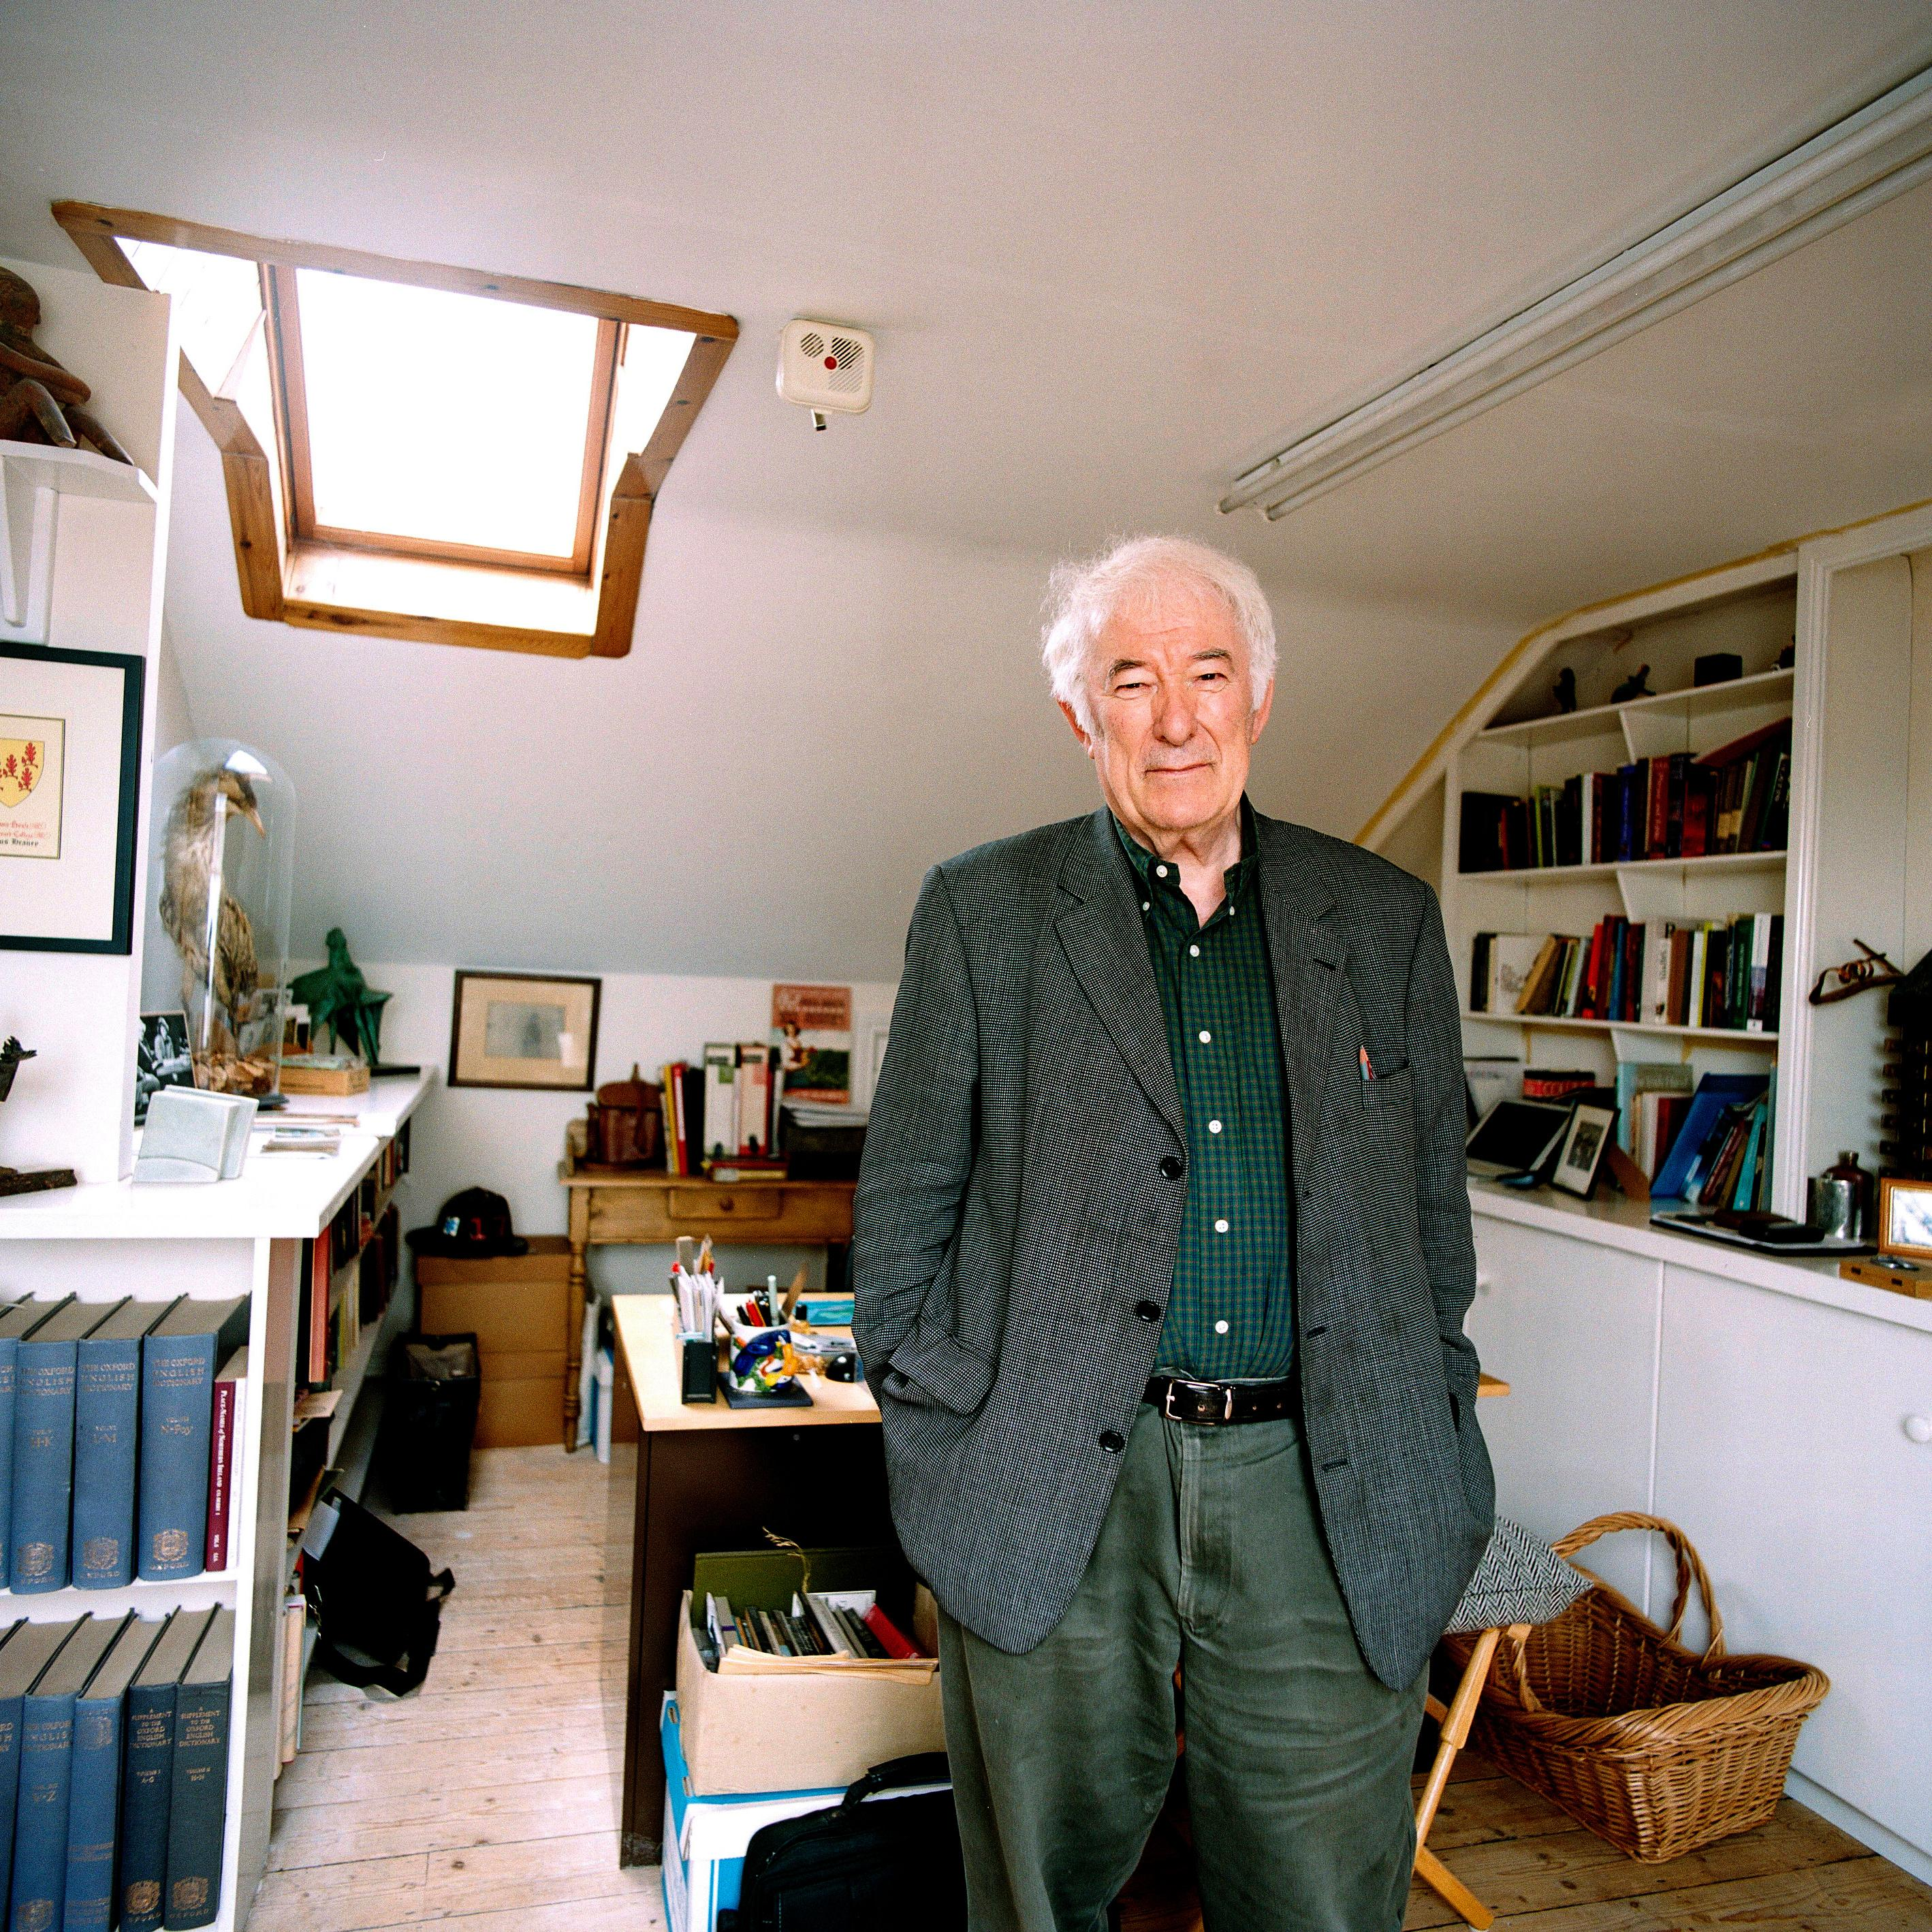 Seamus Heaney's words heal wounds reopened on Ireland's border